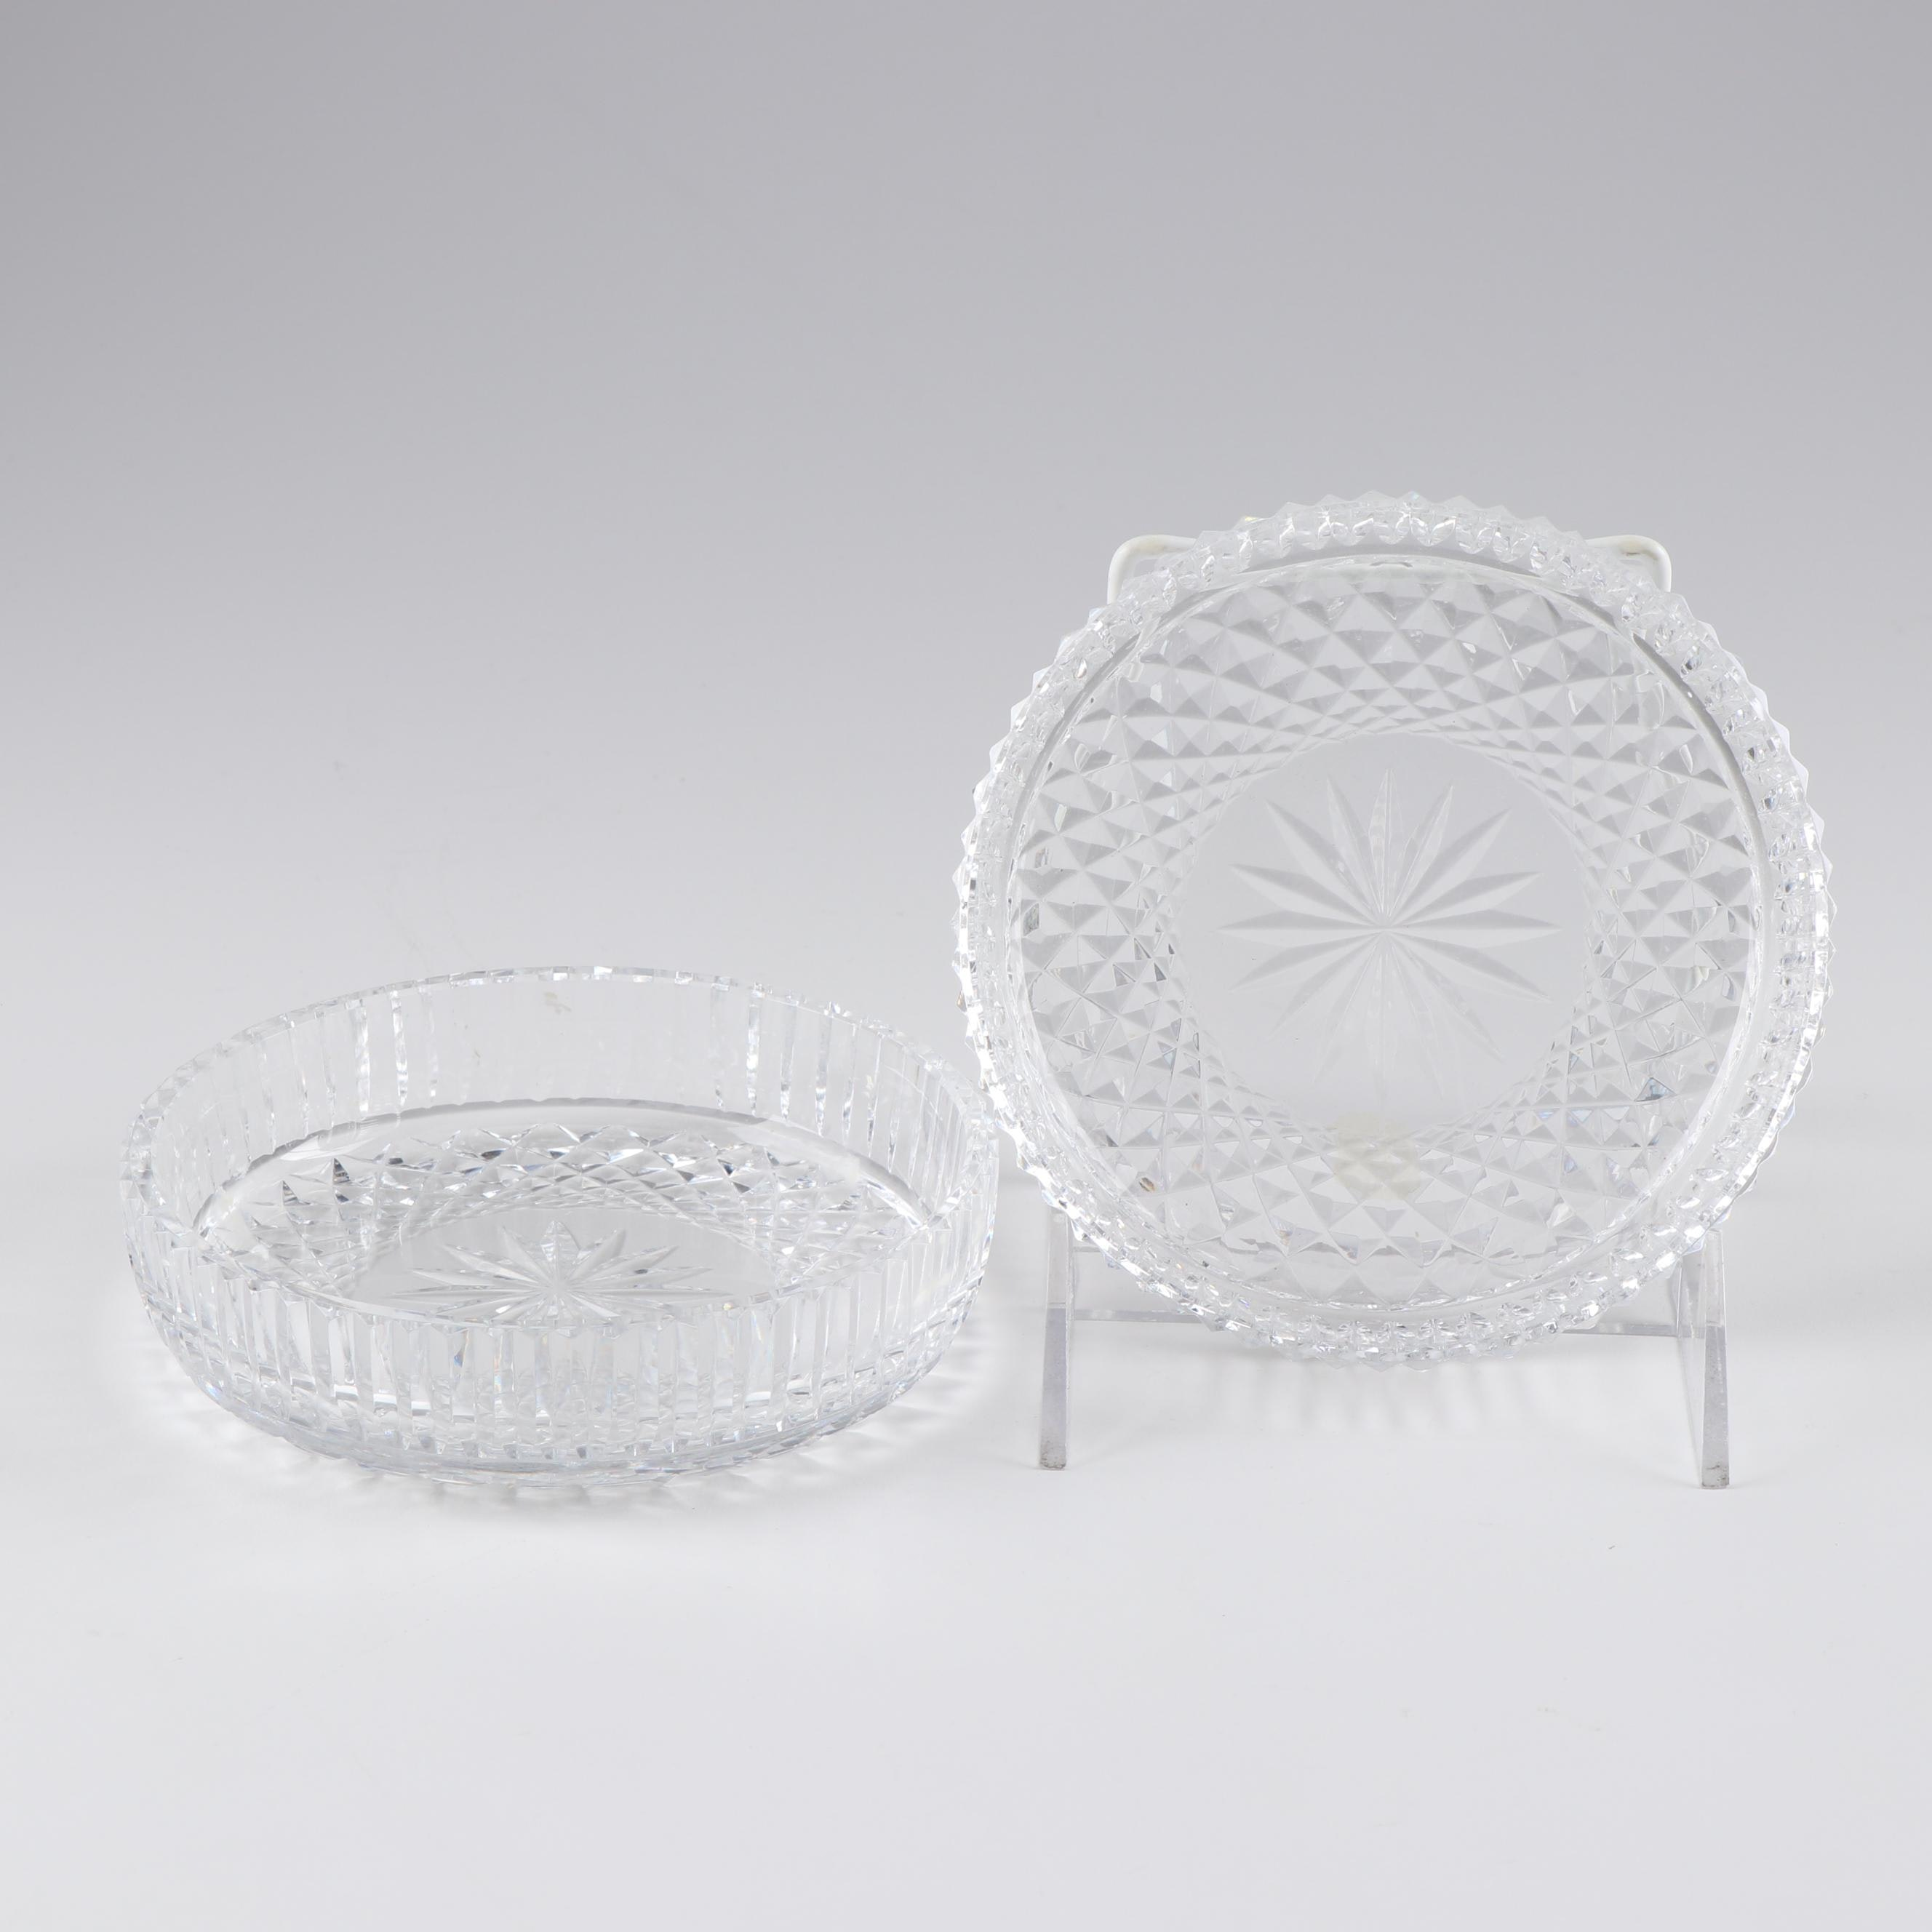 Lead Crystal Candy Dishes